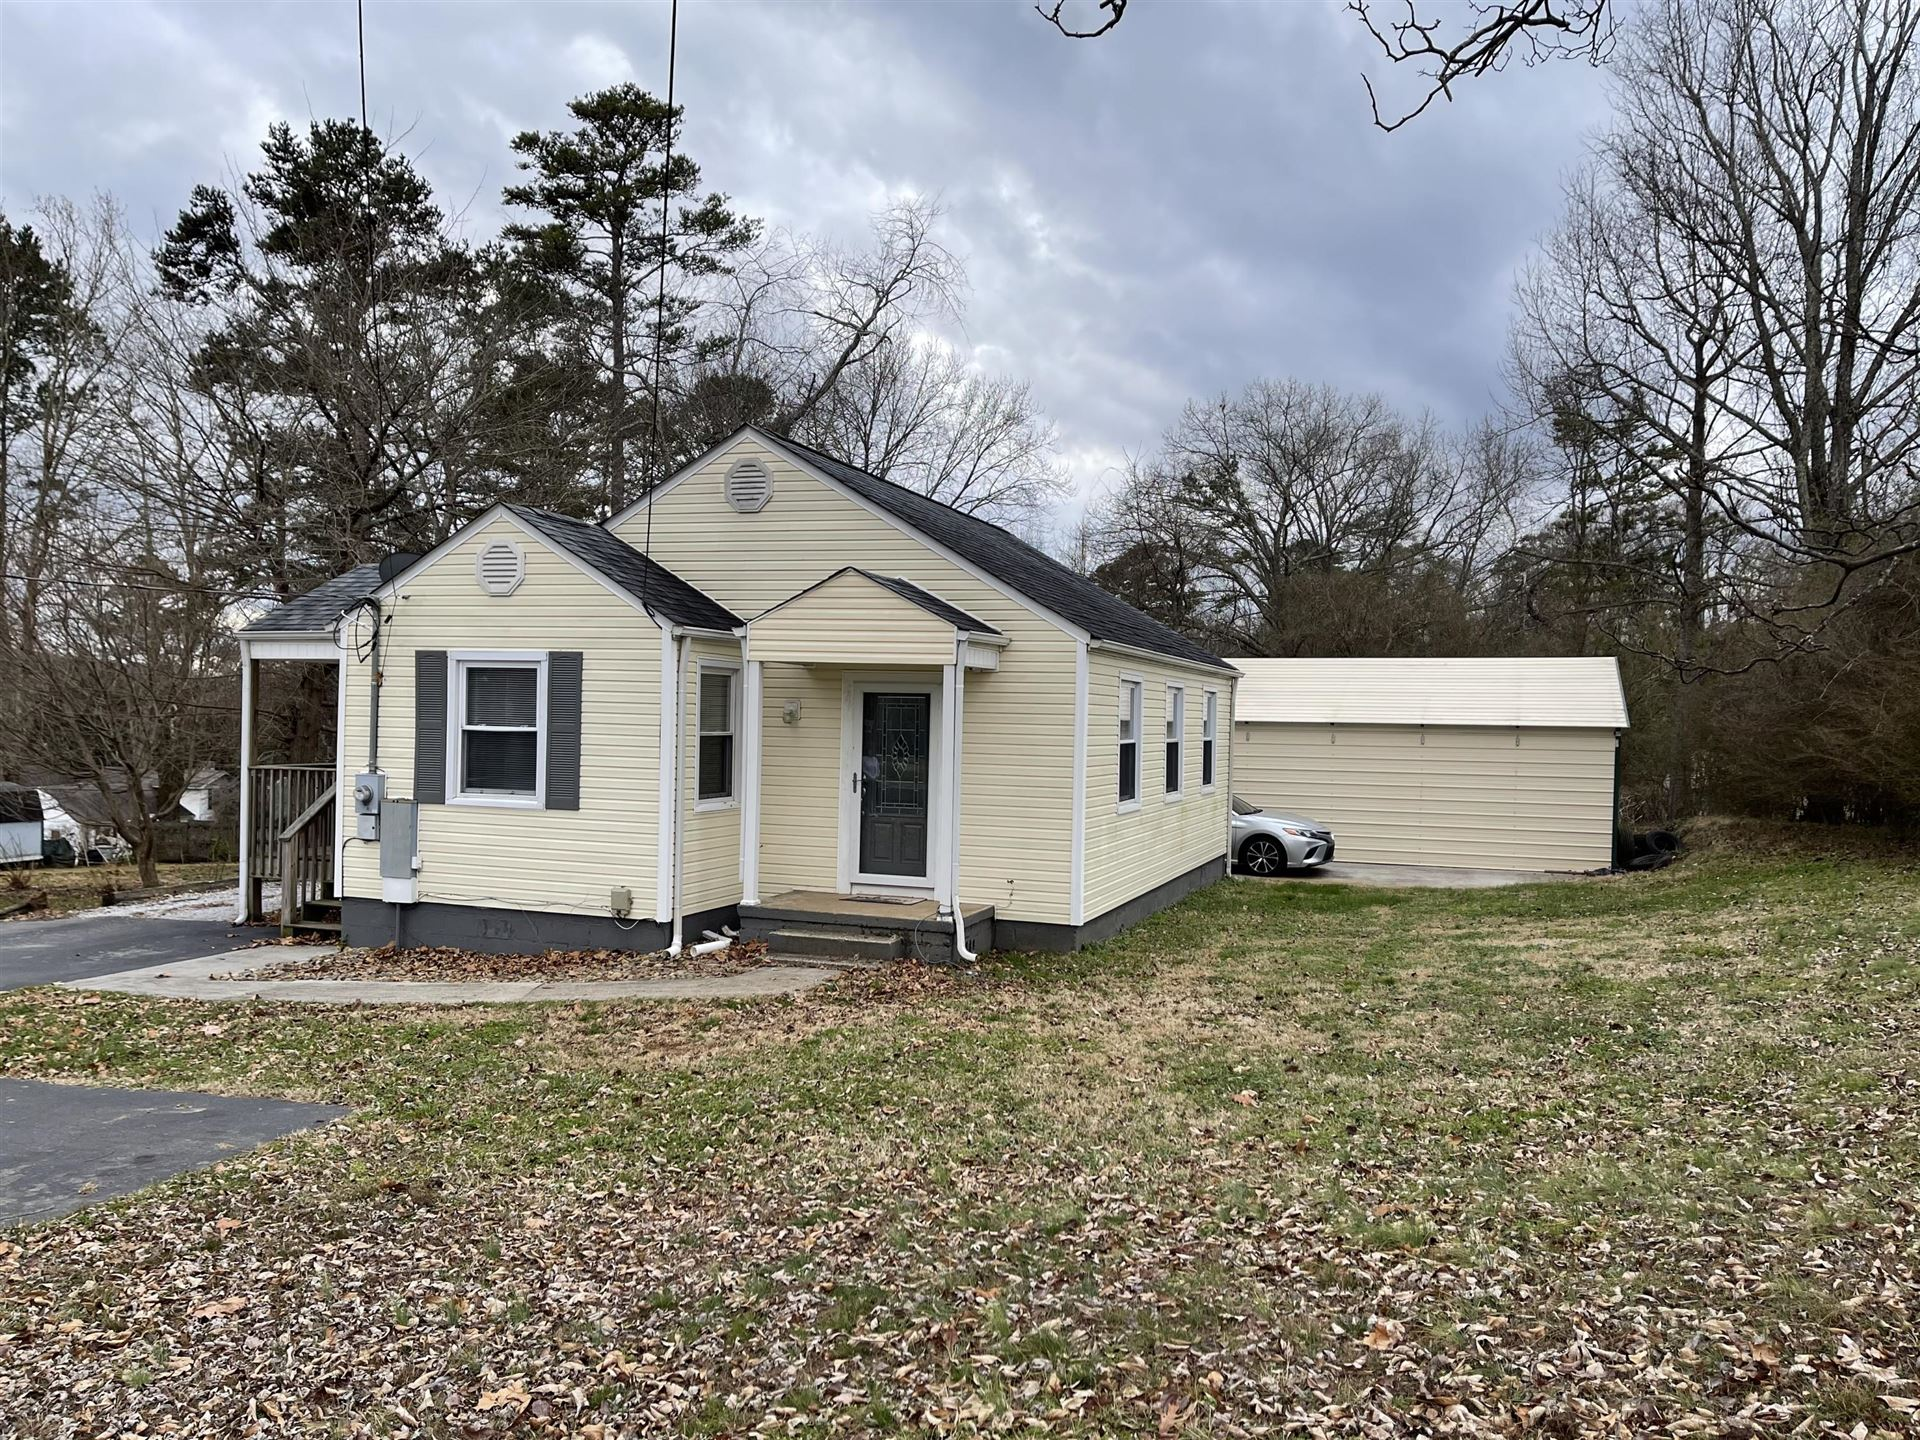 Photo of 5405 Shannondale Rd, Knoxville, TN 37918 (MLS # 1140241)